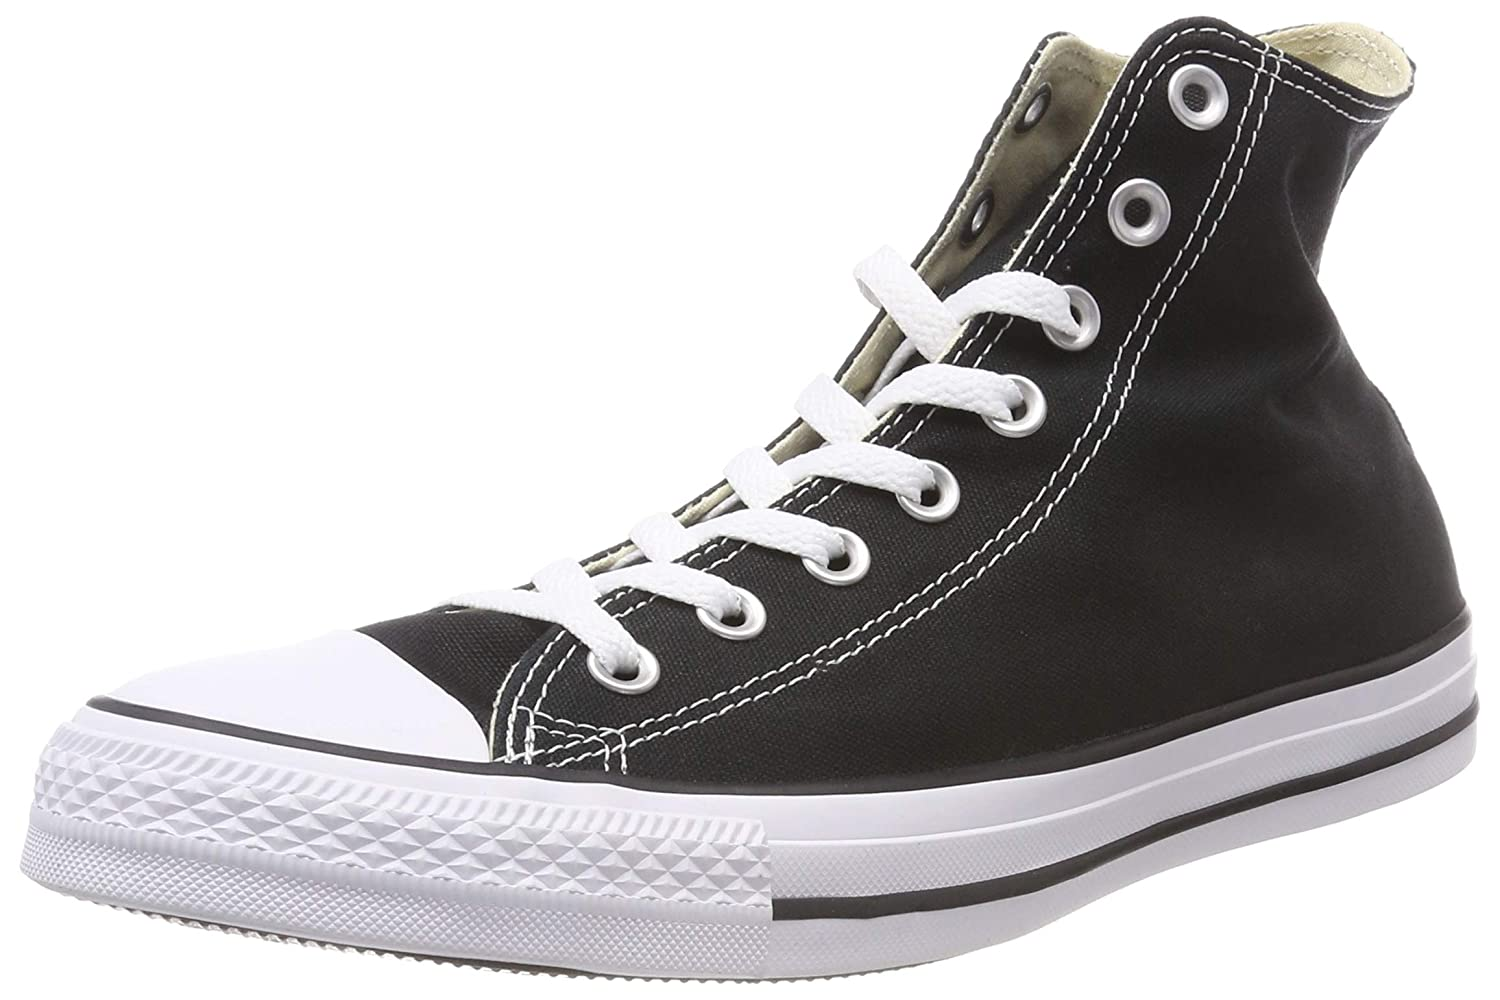 Converse Chuck Taylor Hi Warhol Men's Shoes